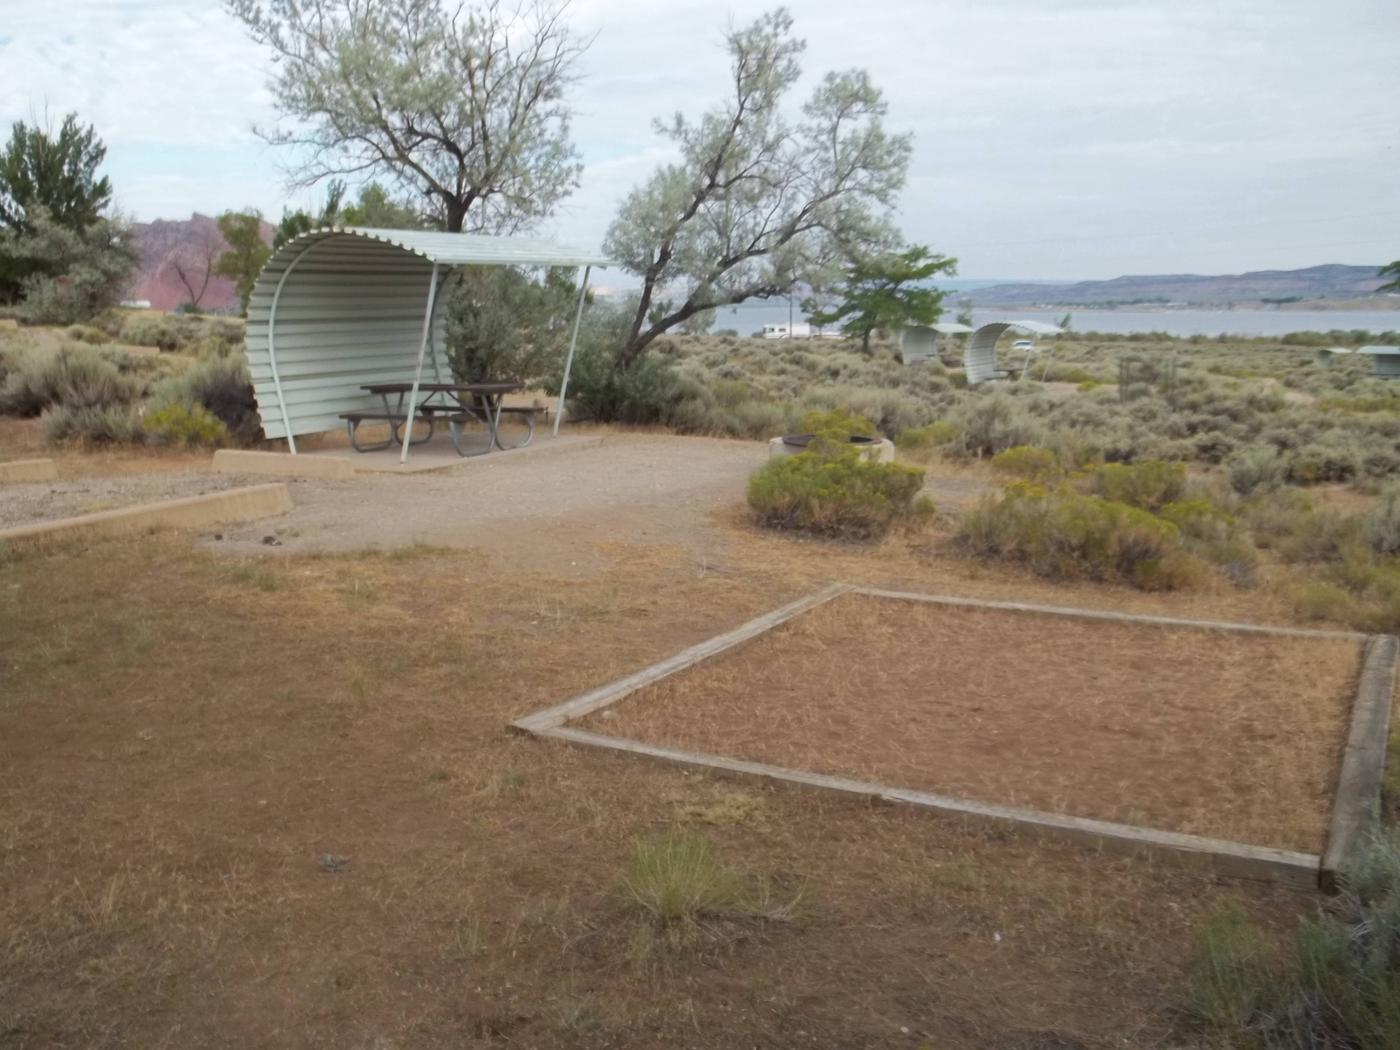 Picnic table with shelter on one side and overhead. There is a fire pit with a grill grate in front of it and a tent pad lined with timbers off to the side of the fire pit.Antelope Campground: Site 7